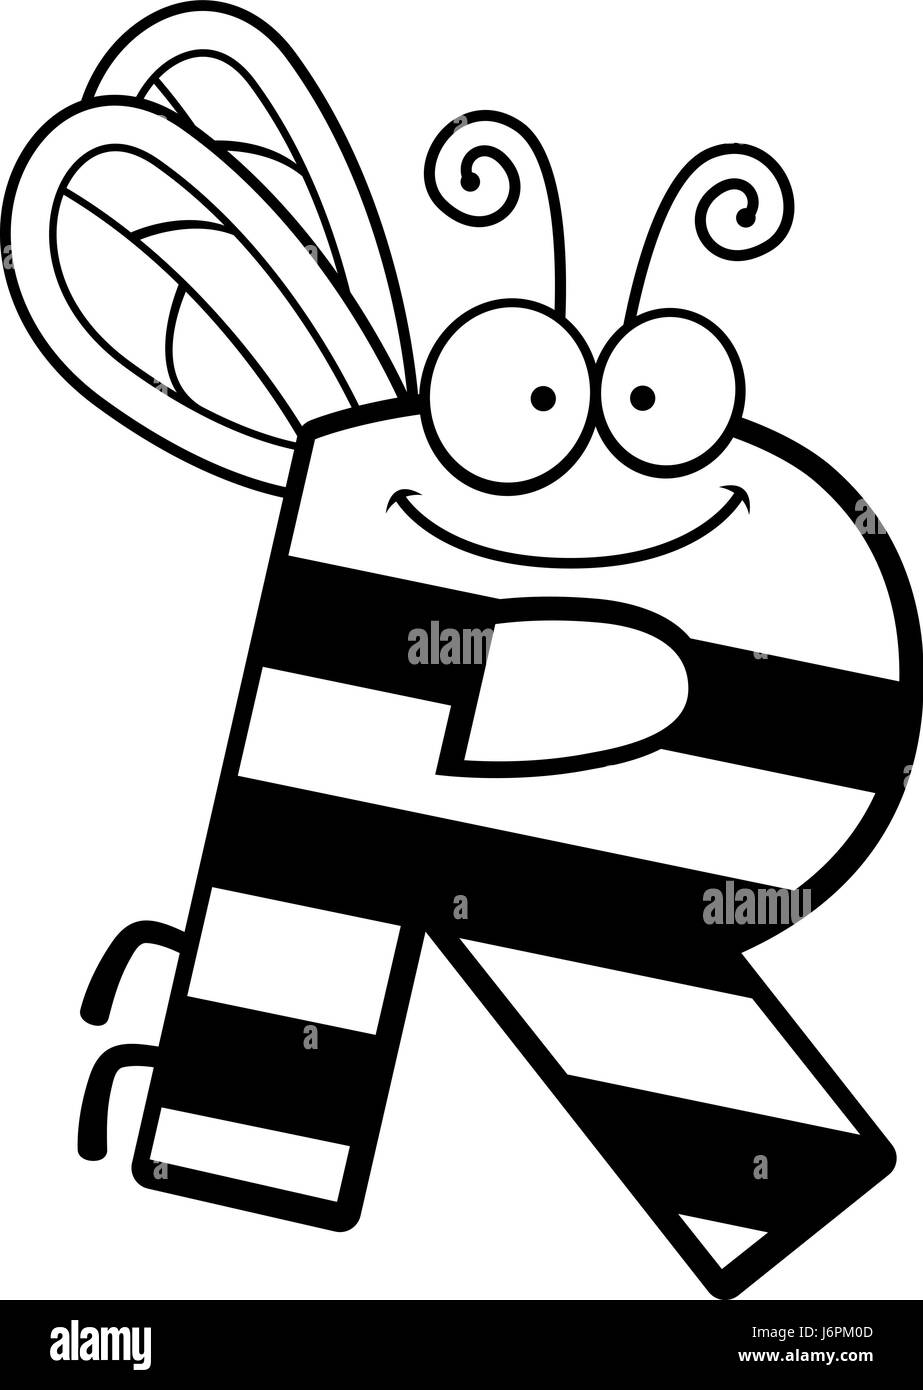 cartoon letter r black and white stock photos & images - alamy